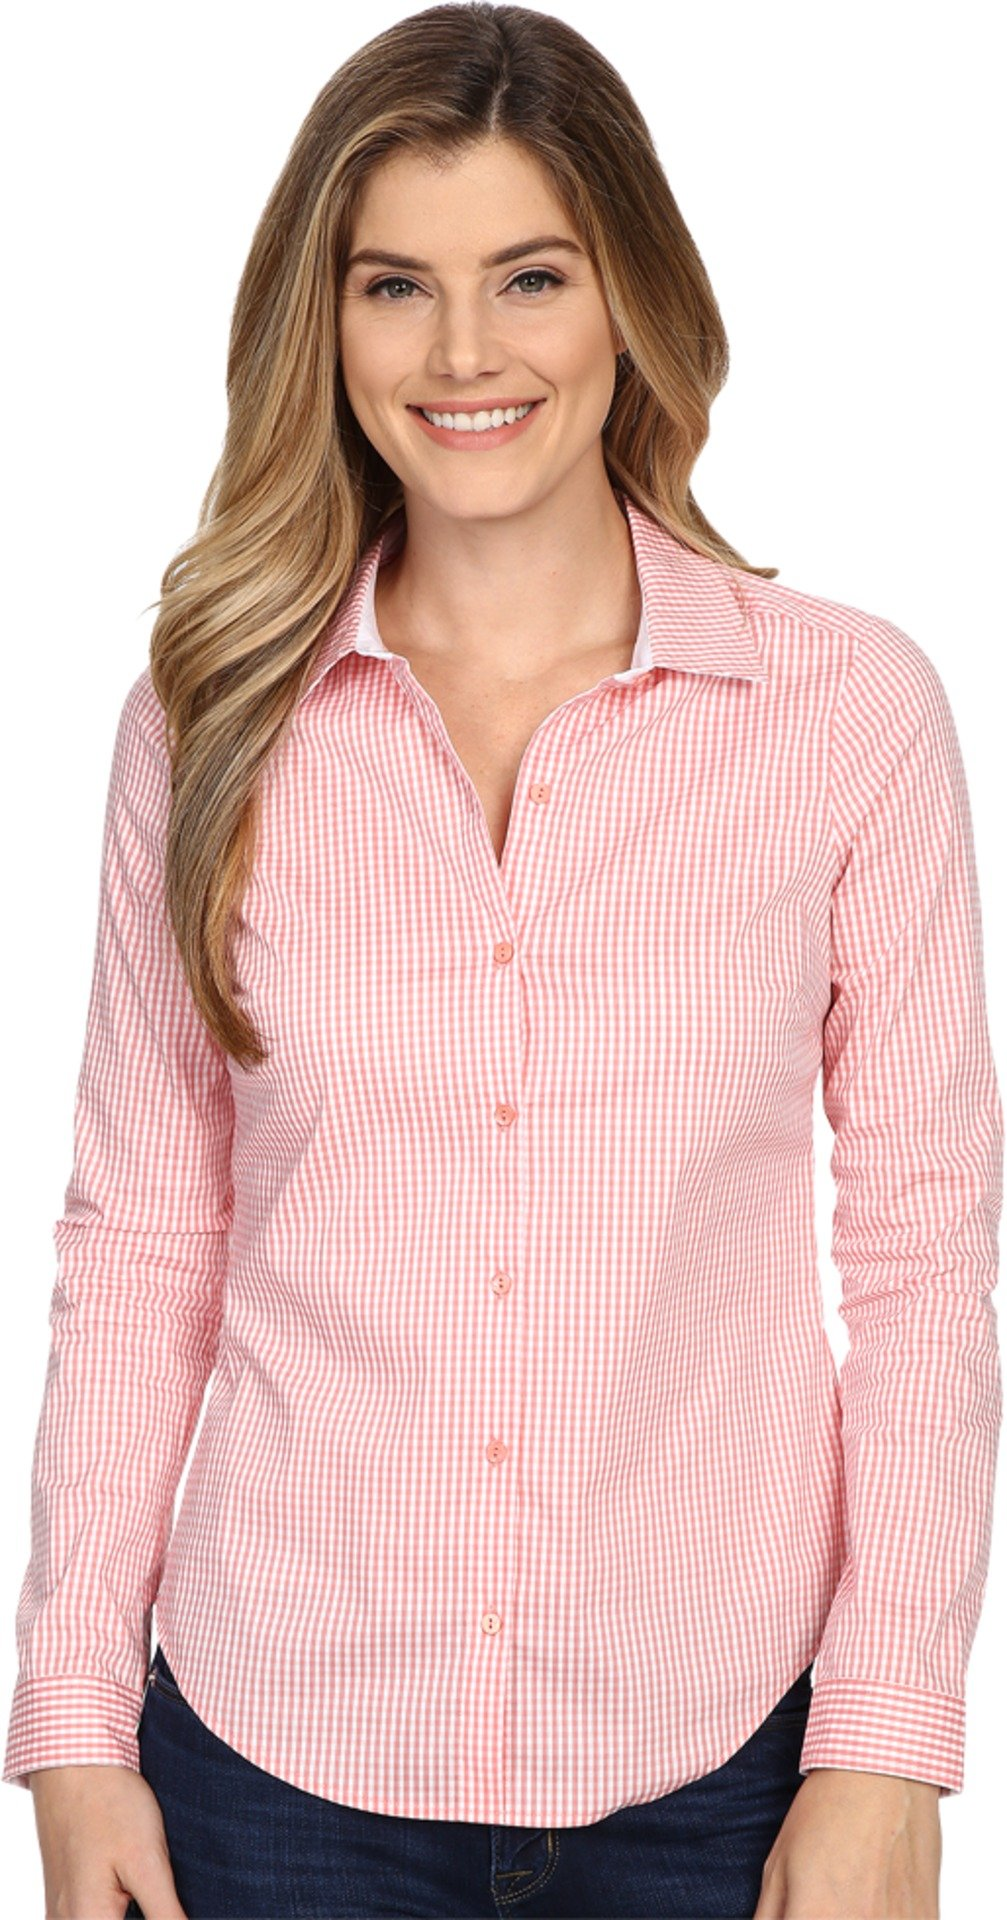 NYDJ Women's Fit Solution Woven Top Guava Gingham Button-up Shirt MD (US 8-10)